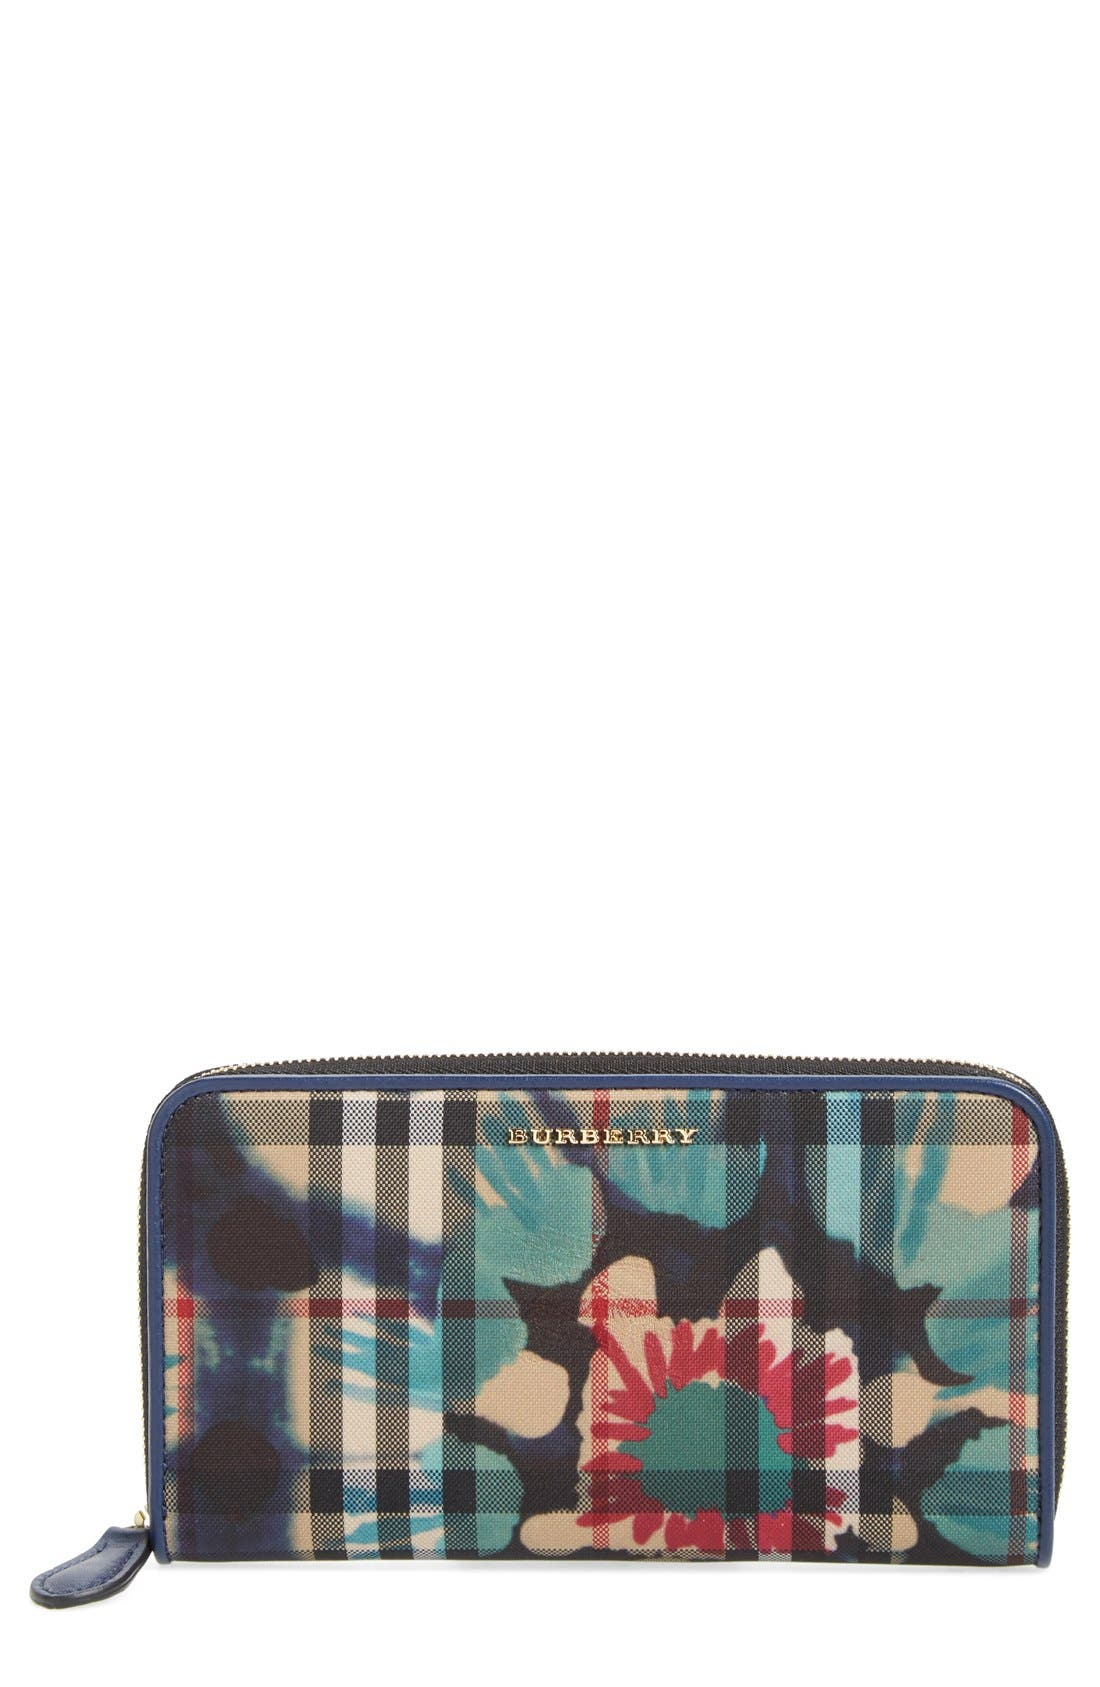 Burberry 'Porter - Printed Horseferry' Floral & Check Zip Around Wallet